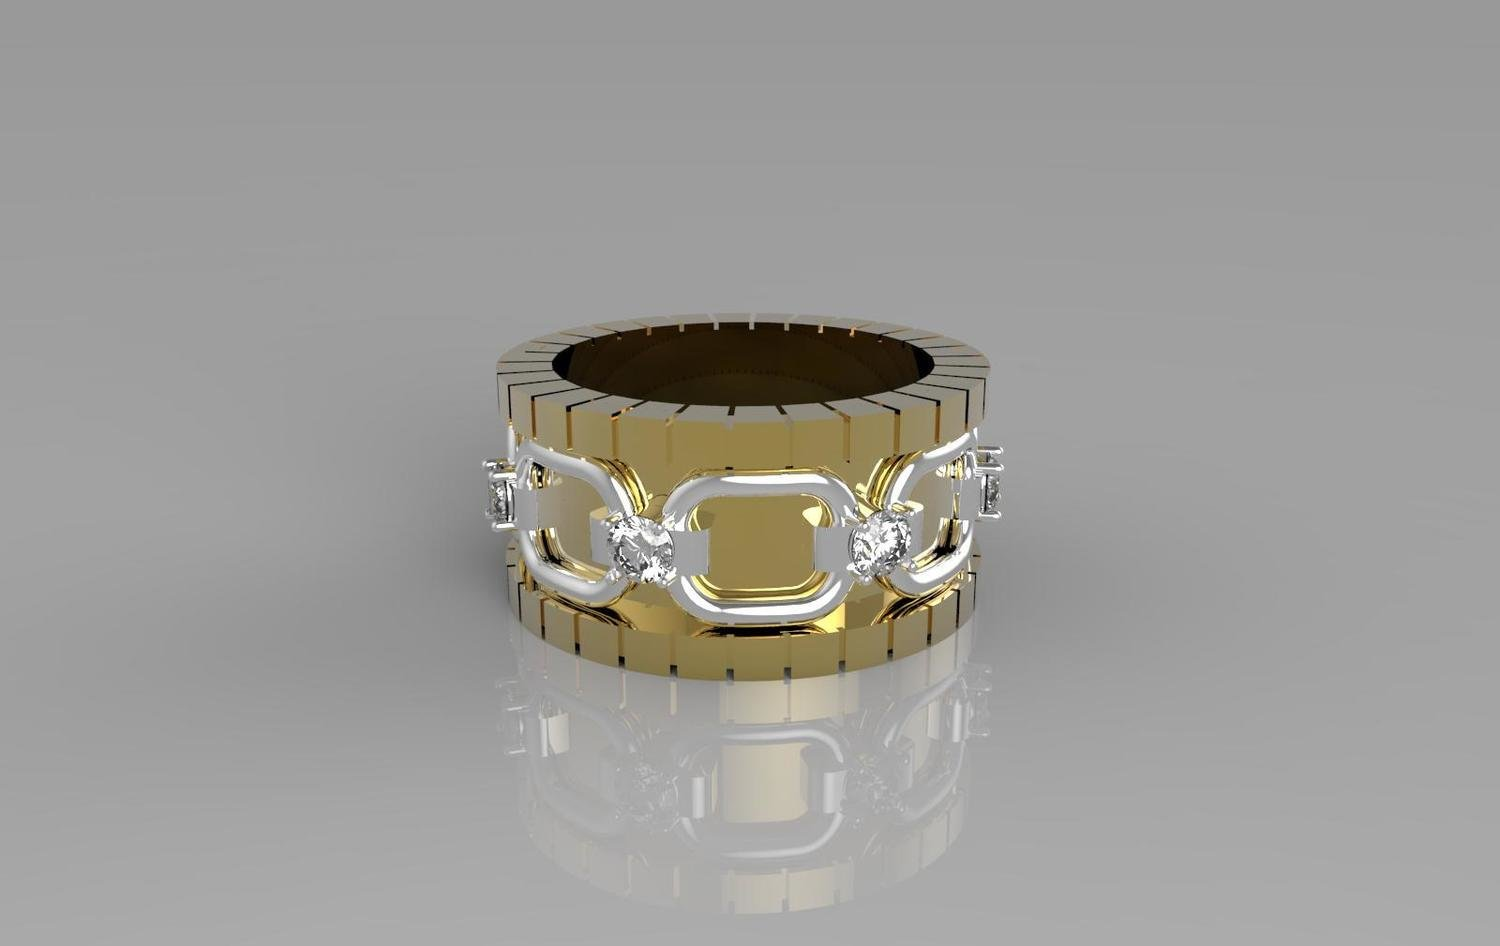 CAD Model of Wedding Ring with Diamonds